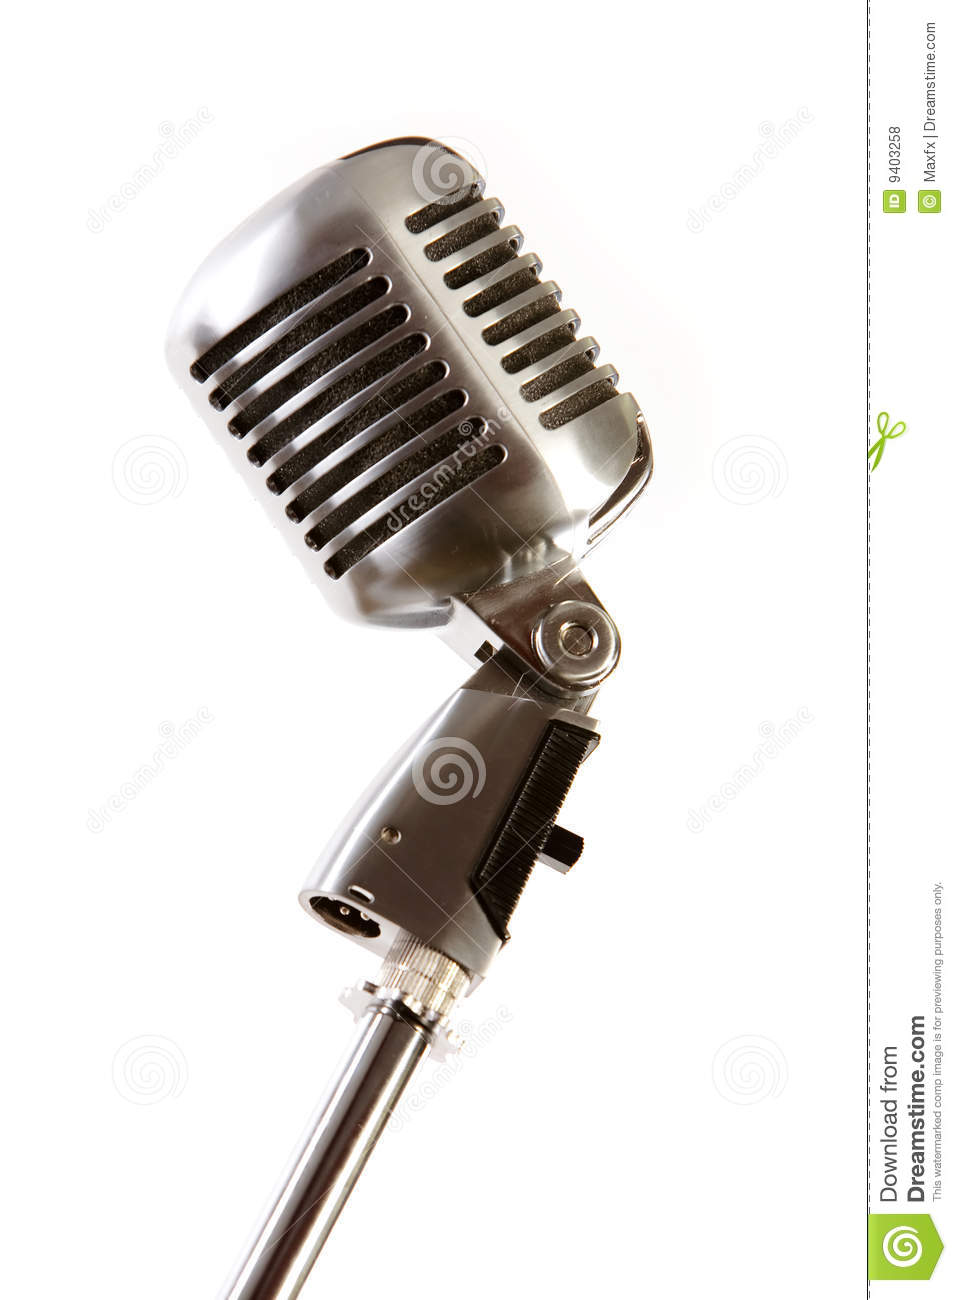 Old fashioned microphone royalty free stock photos image 9403258